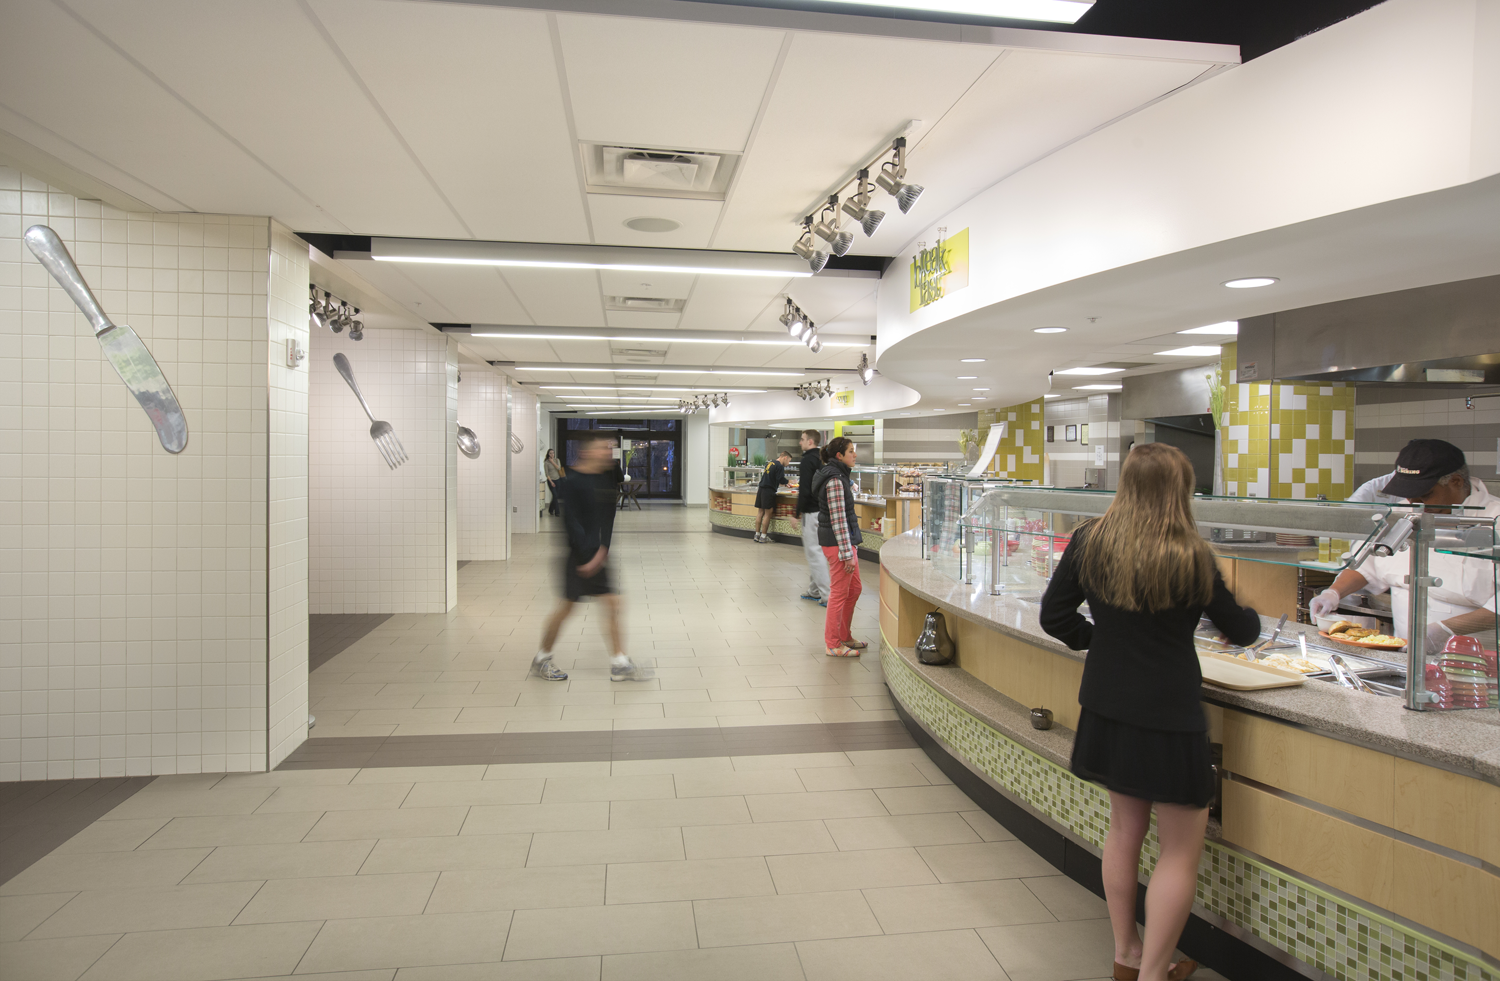 All Rand Dining Center Restaurants Are Part Of The VU Meal Plans!